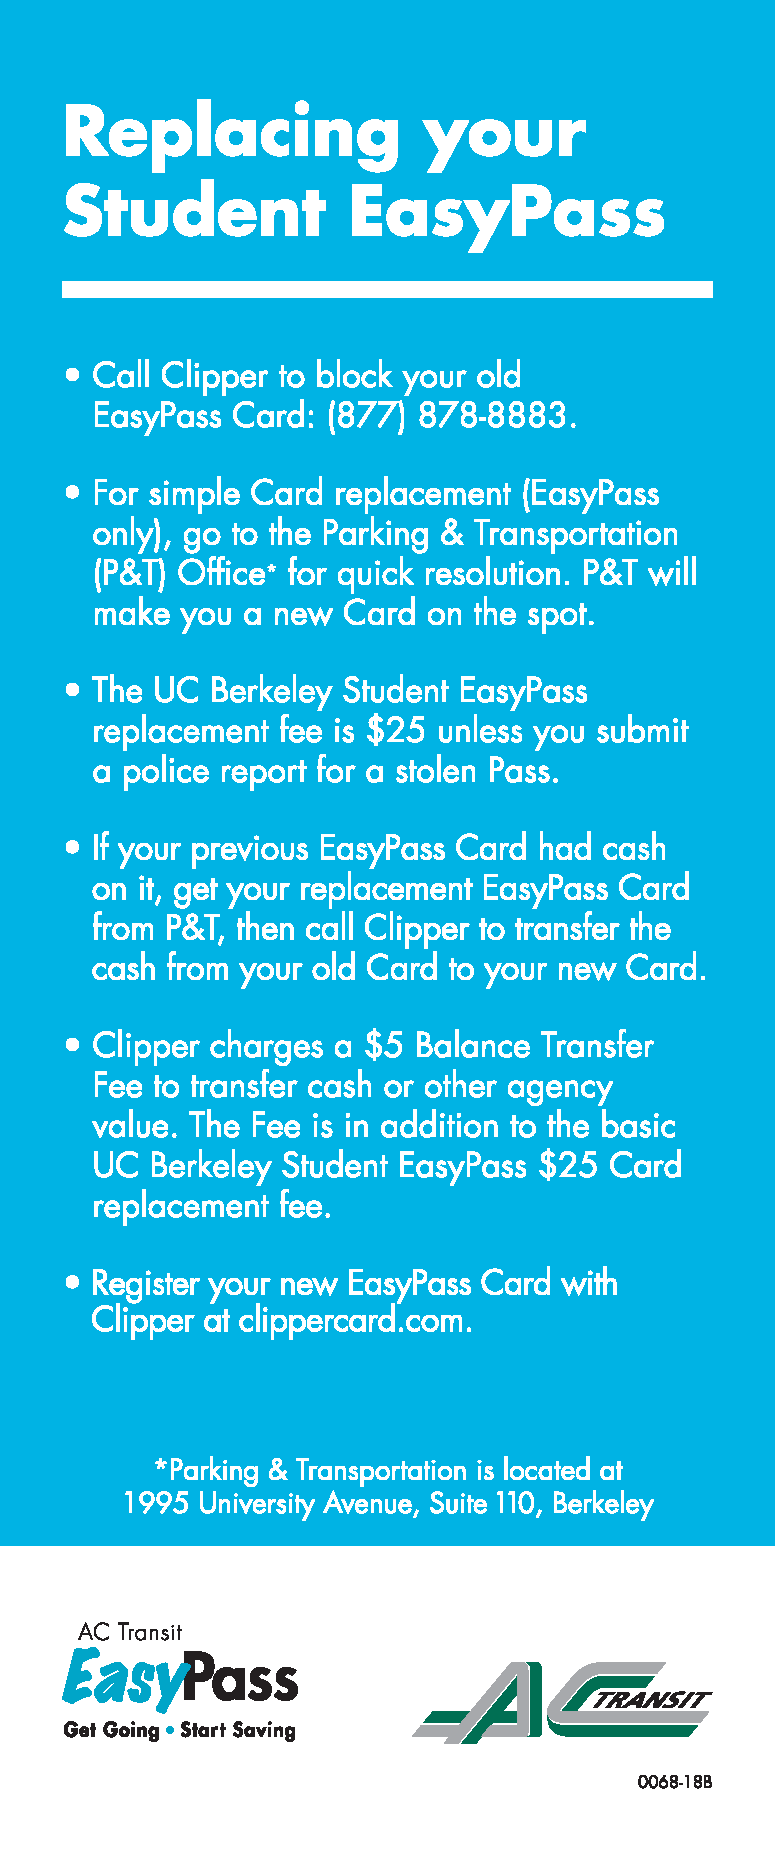 AC Transit Replace Student EasyPass